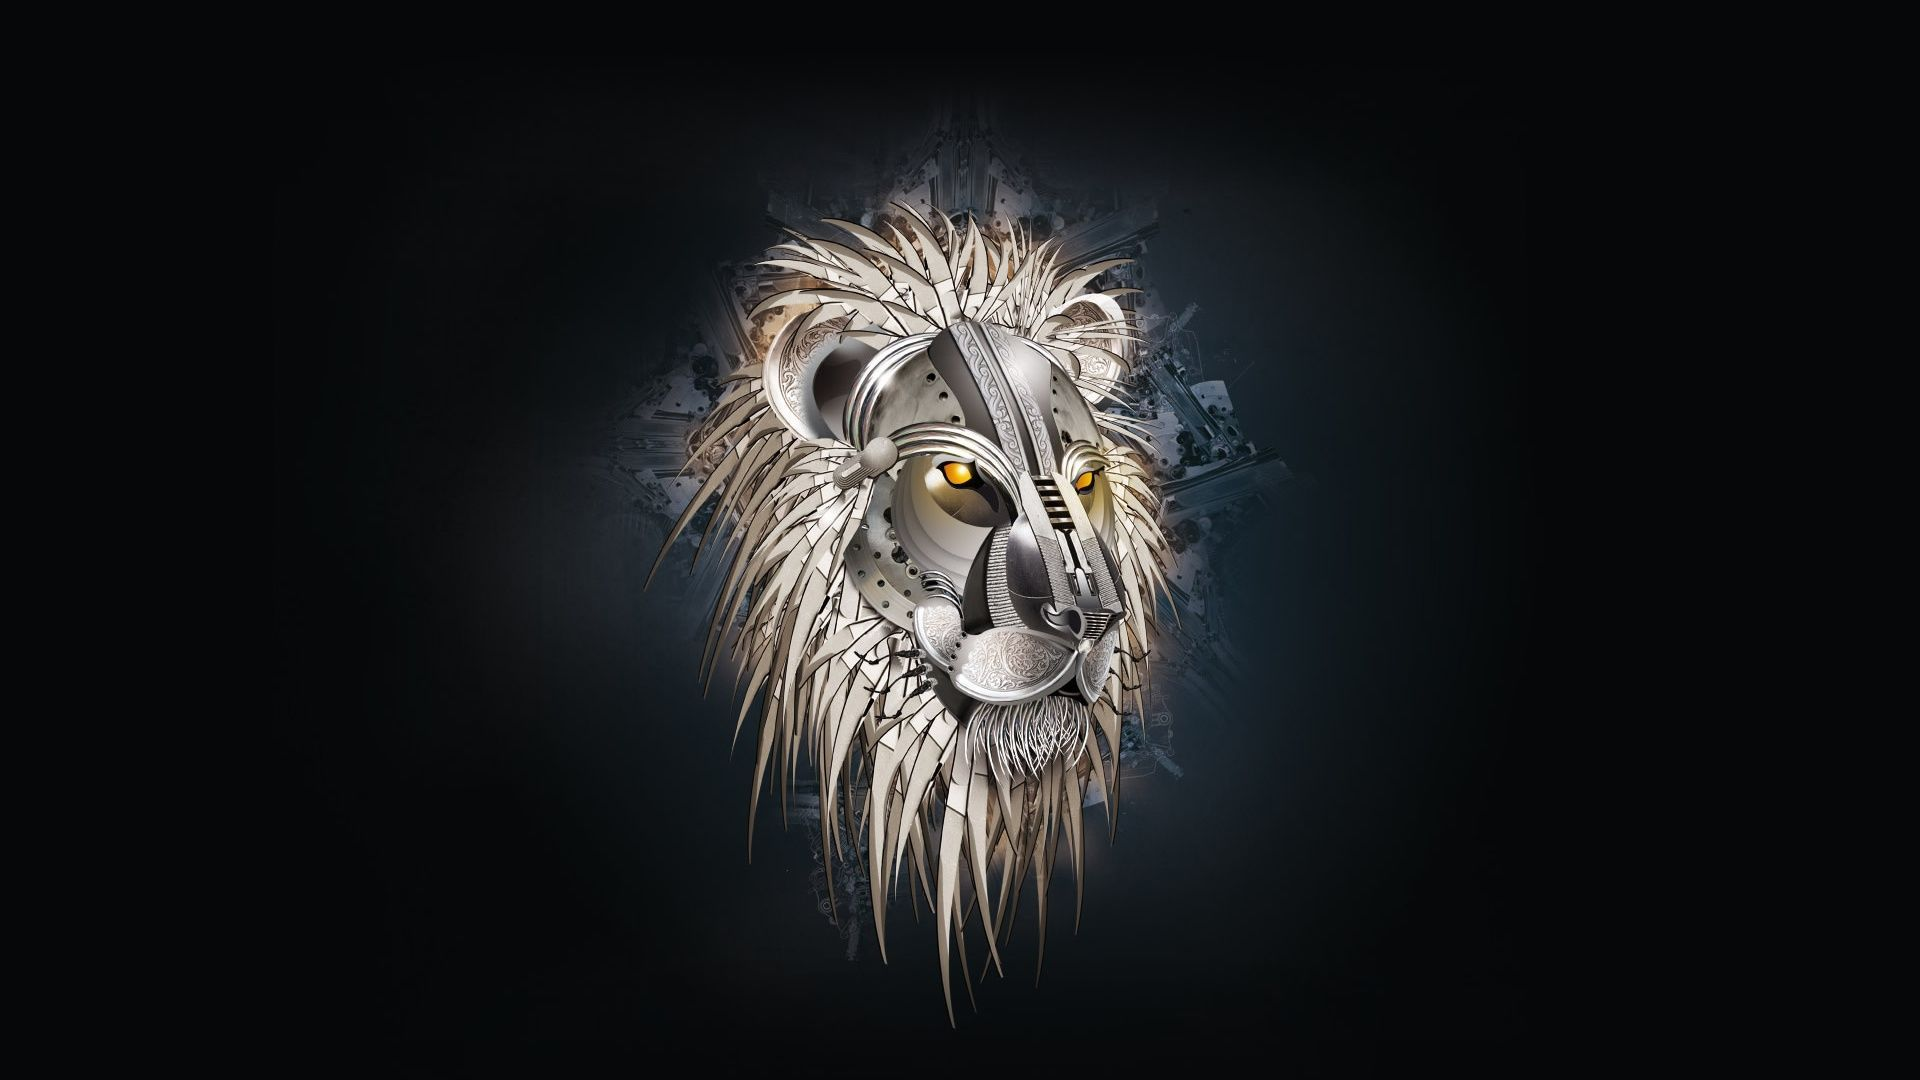 Lion Art wallpaper download